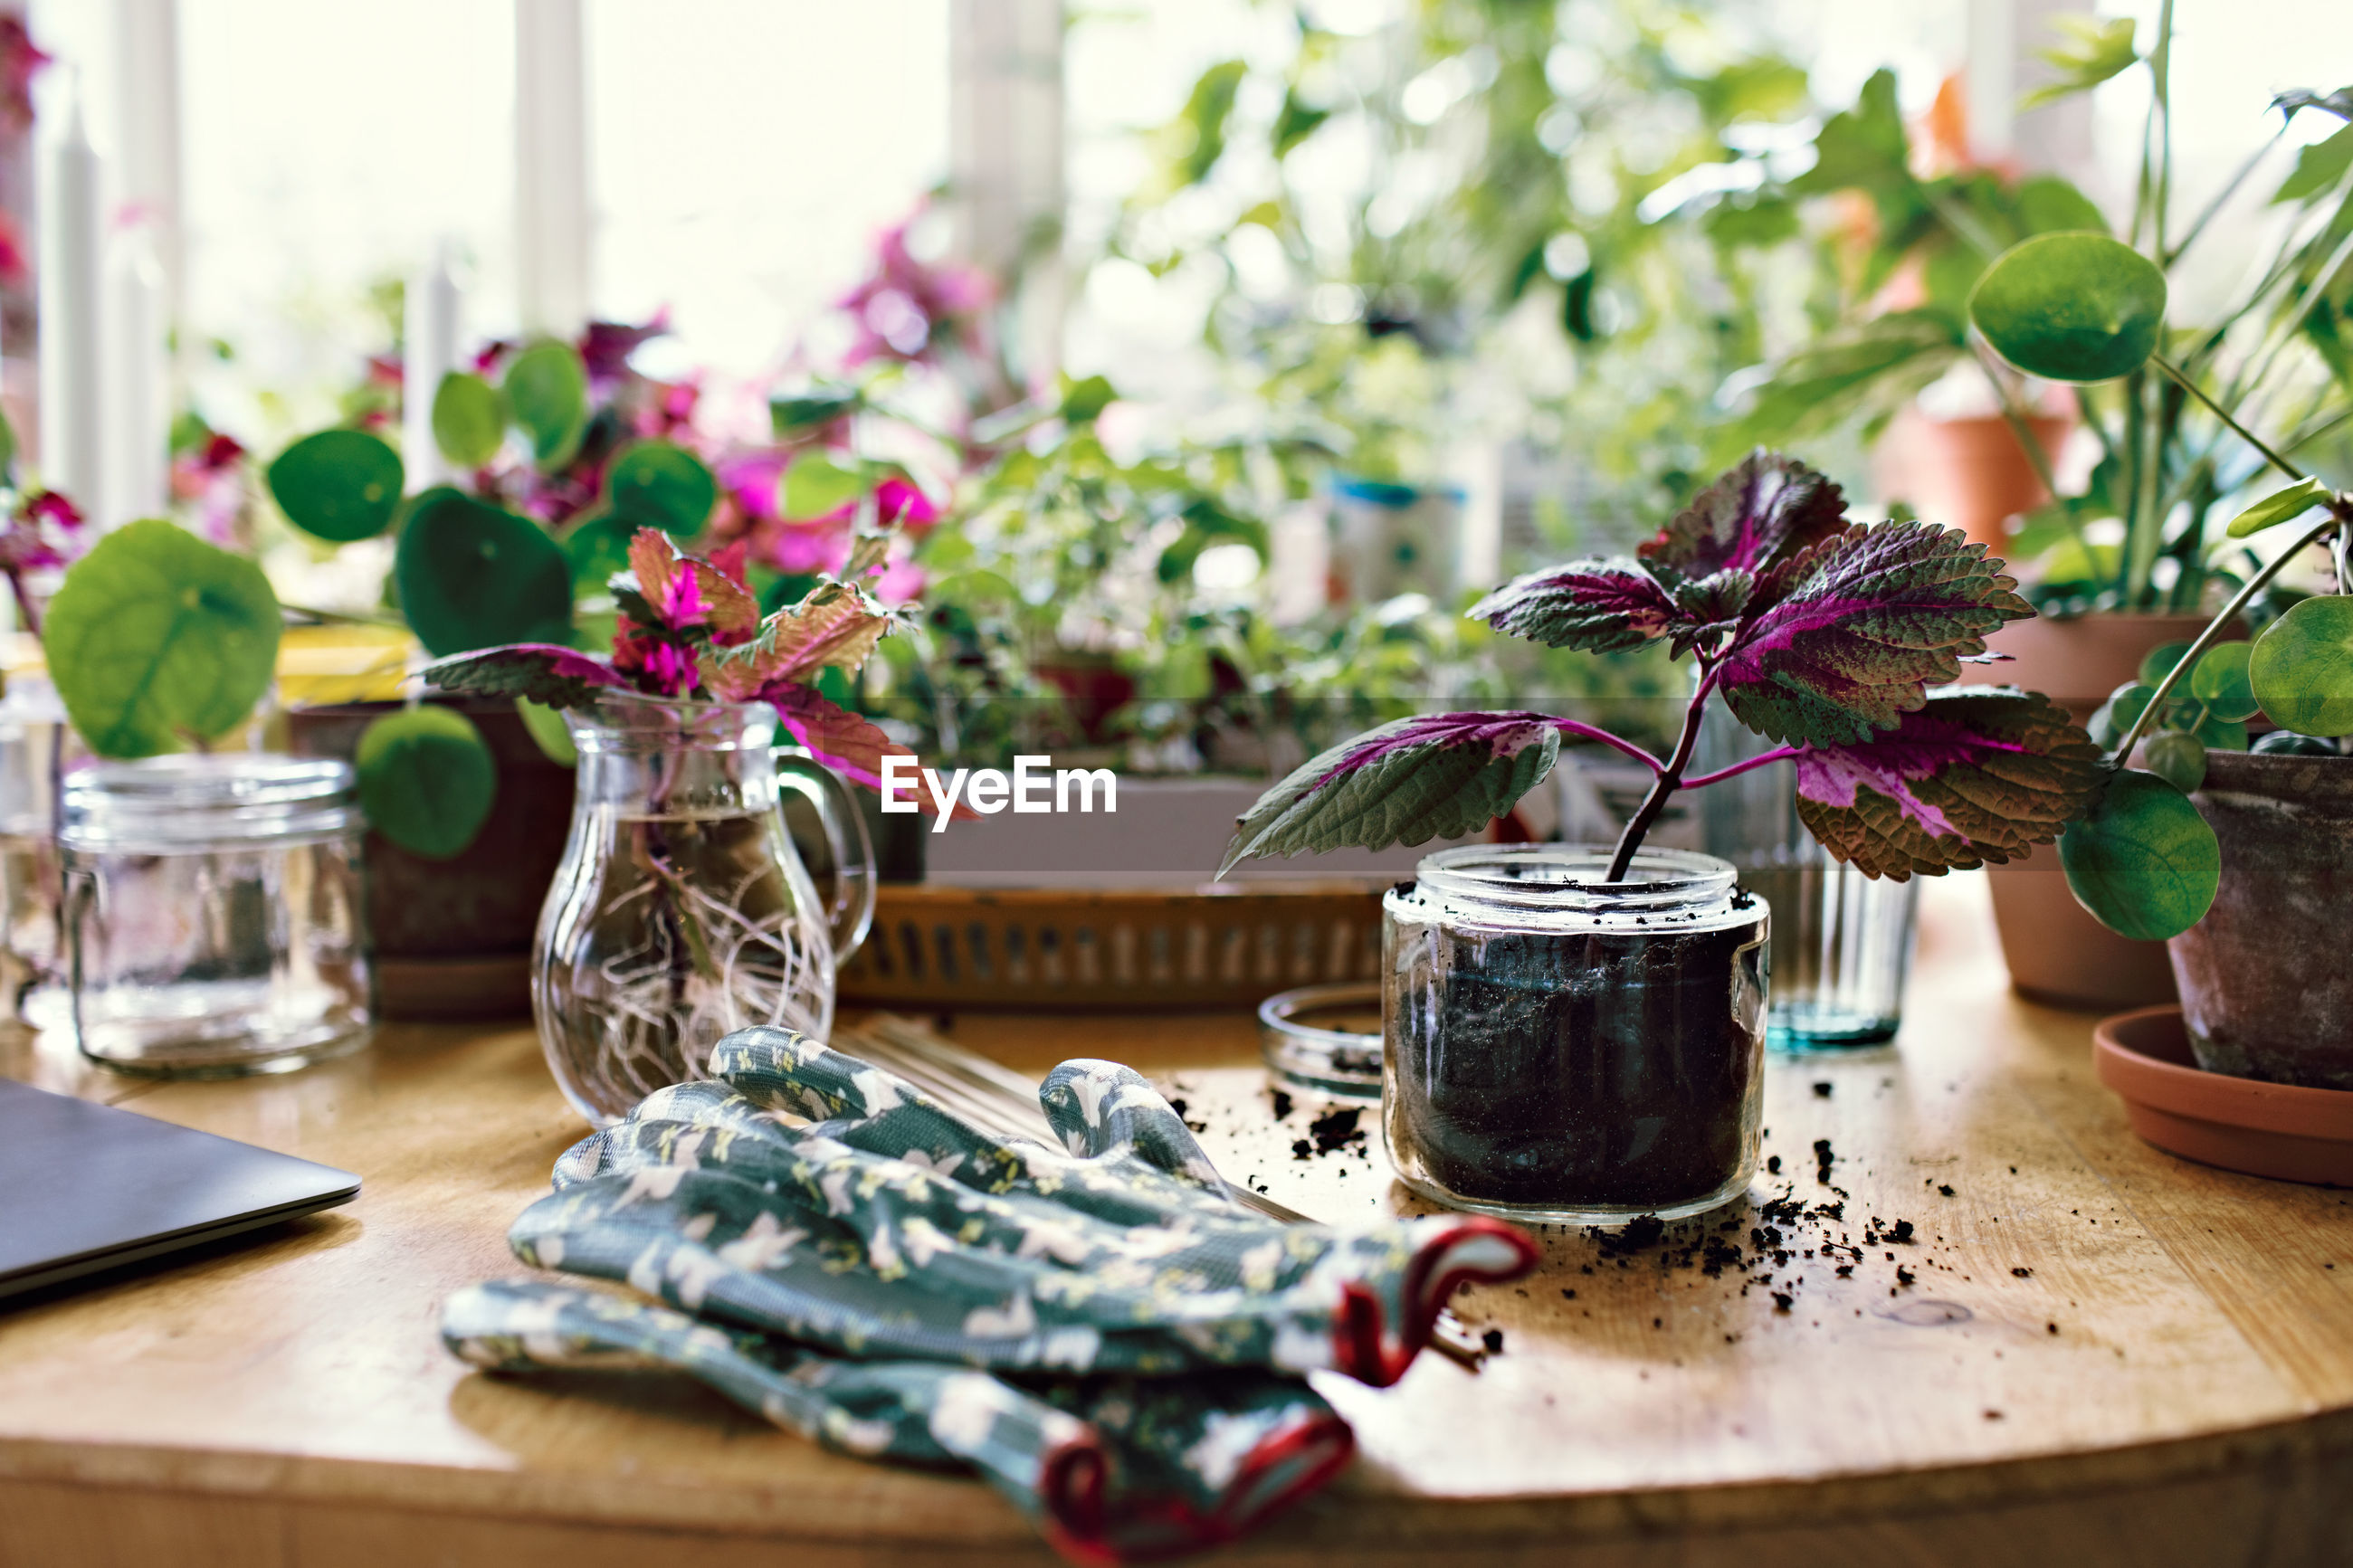 CLOSE-UP OF POTTED PLANTS IN VASE ON TABLE